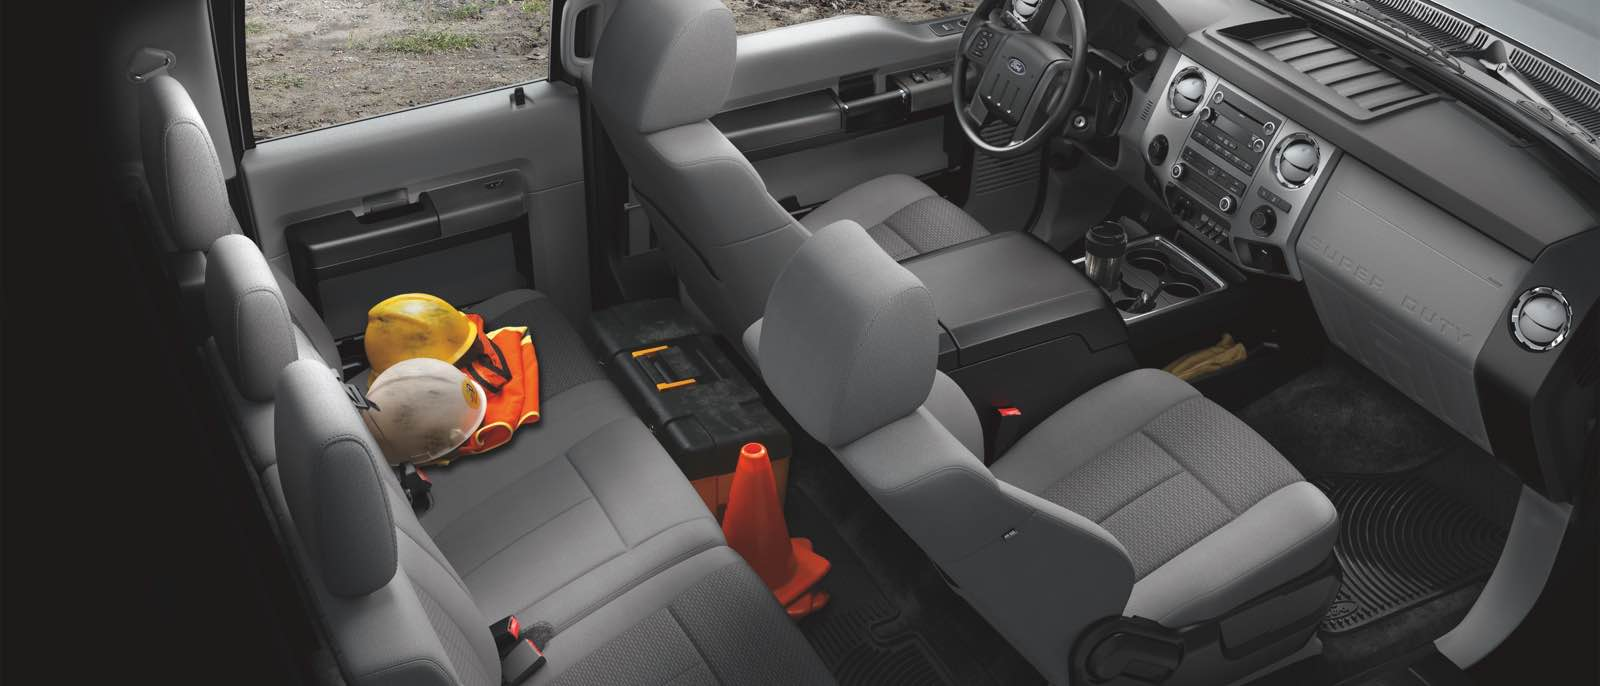 2016 Ford Super Duty spacious interior